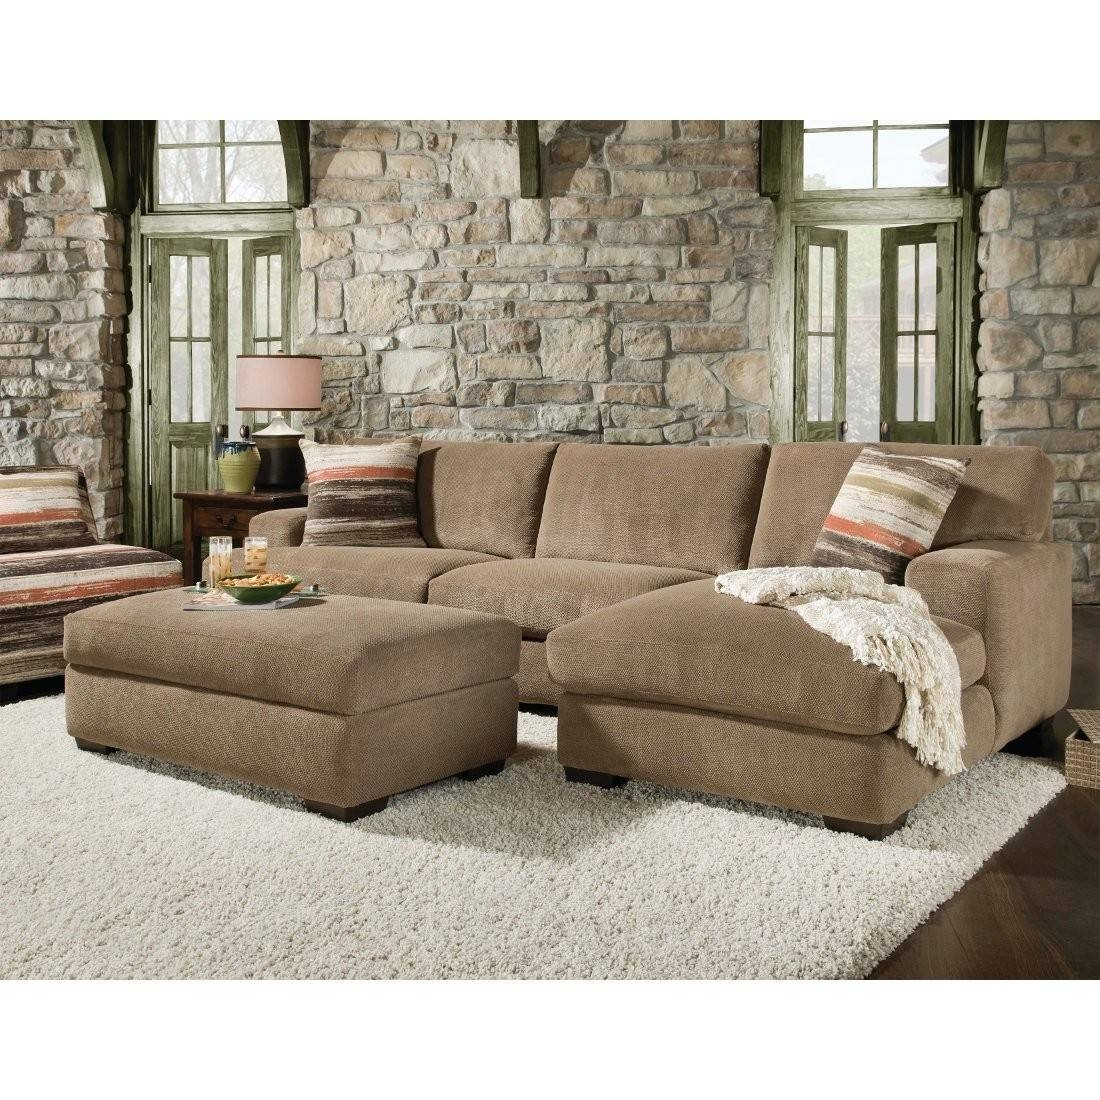 Sectional Sofa With Chaise And Ottoman – Cleanupflorida Intended For Backless Chaise Sofa (View 10 of 30)